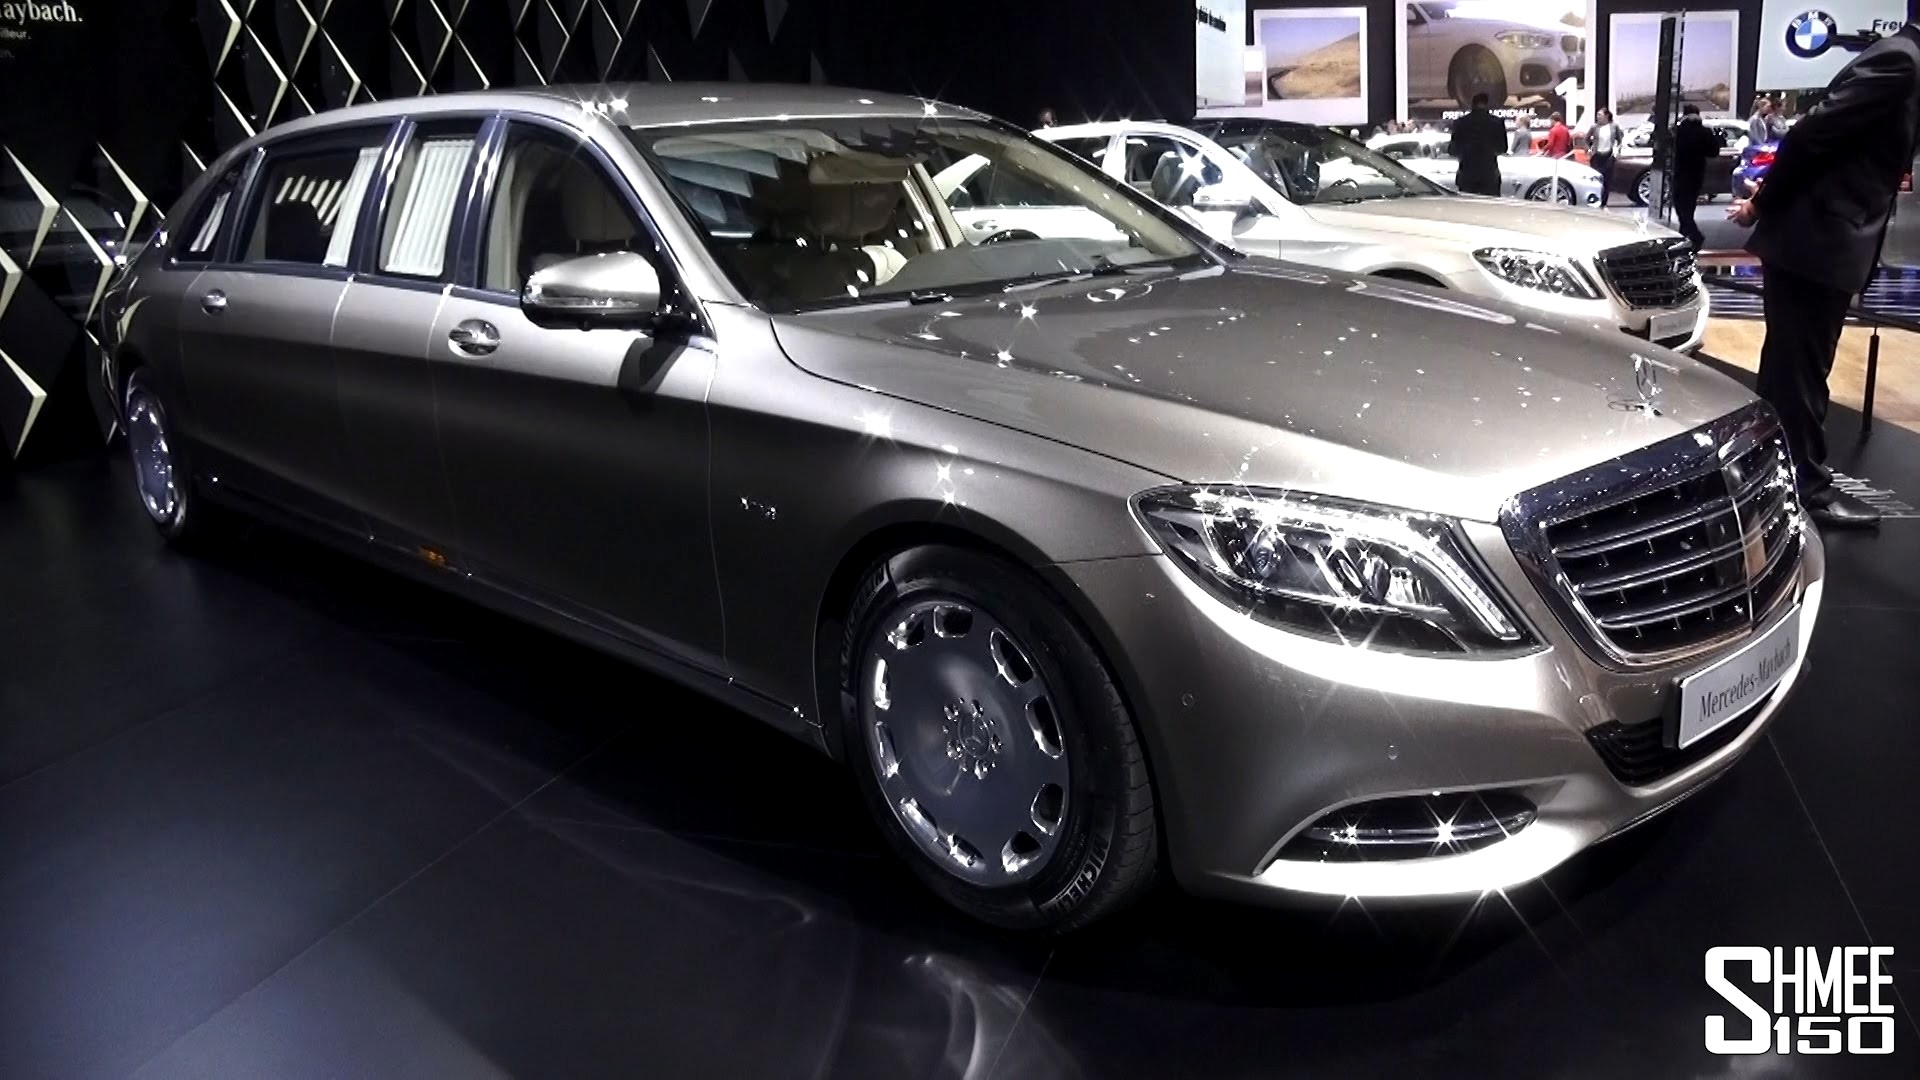 Mercedes Maybach S600 Wallpapers HD Download 1920x1080